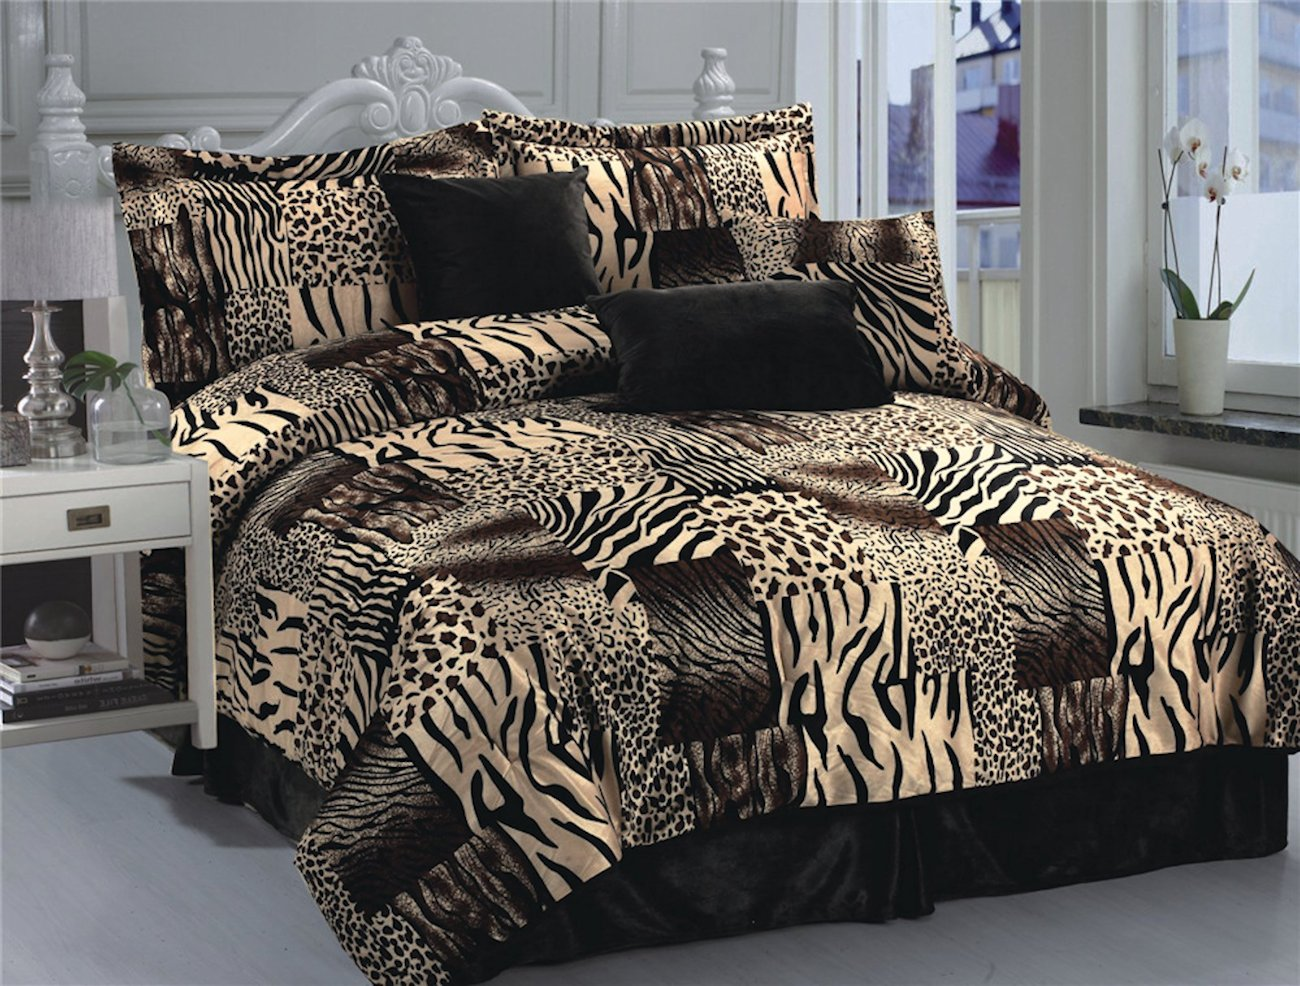 King Comforters | Black And White Queen Size Bedding Sets | Queen Size Bedding Sets